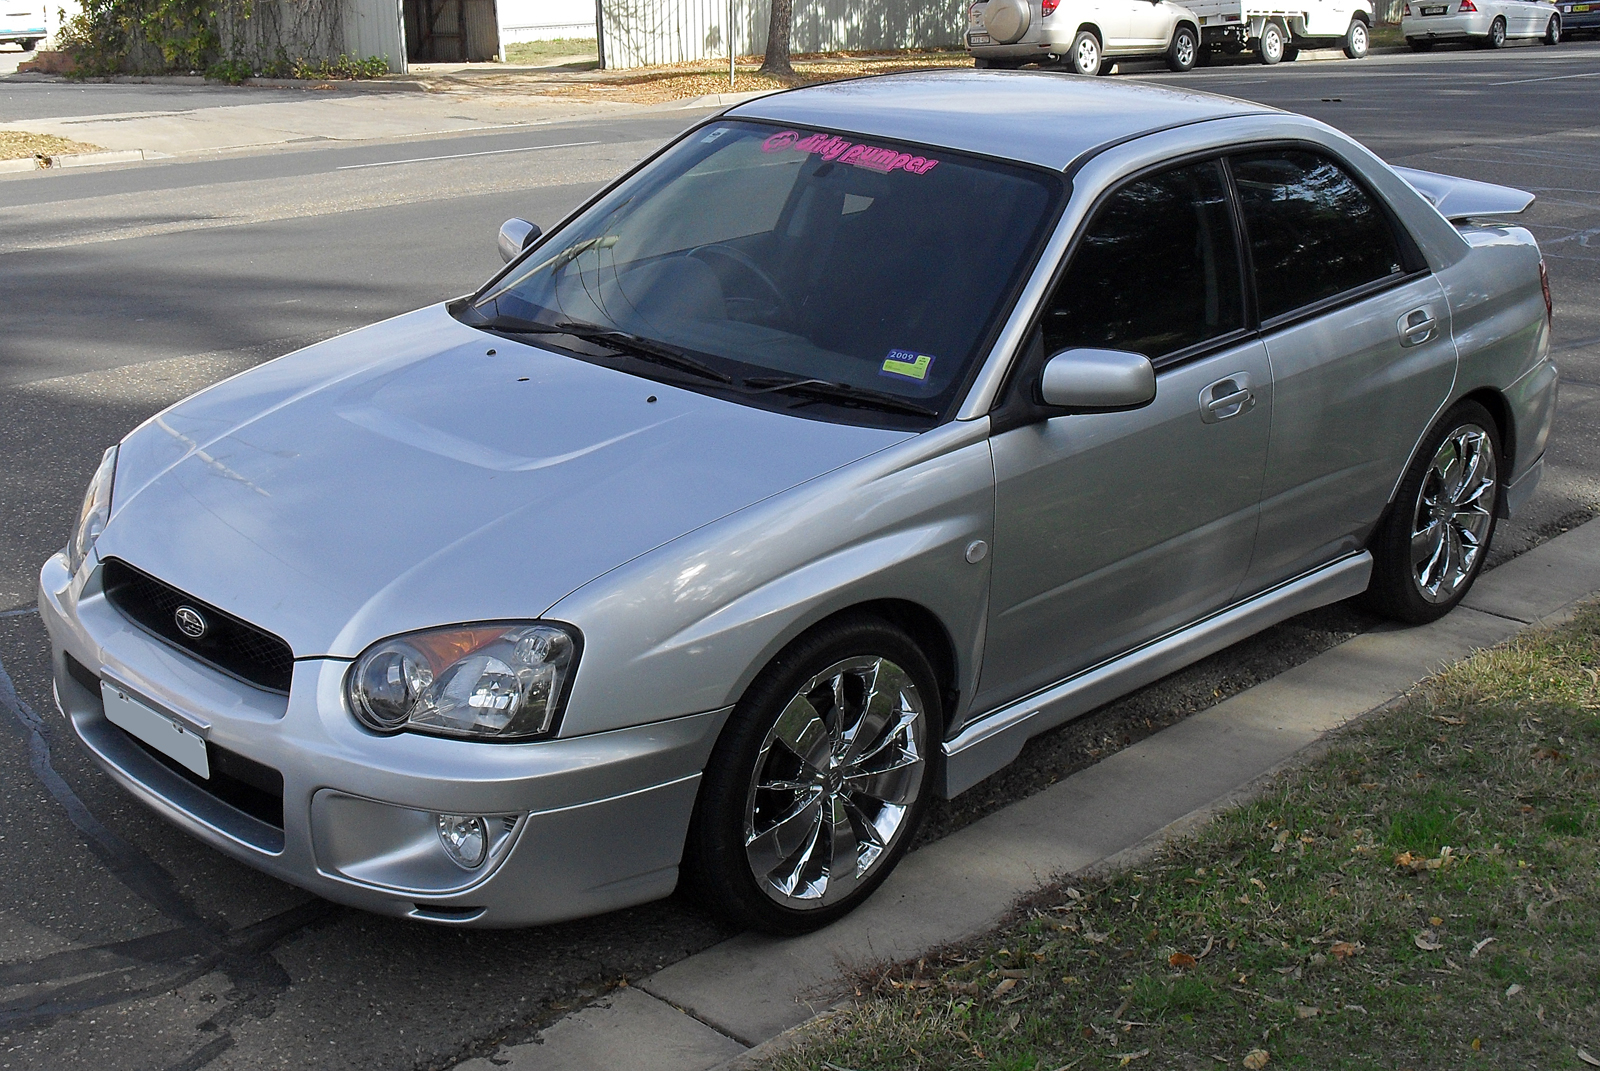 2004 subaru impreza 25 rs sport wagon automatic us related 2004 subaru impreza 25 rs sport wagon automatic us vanachro Gallery